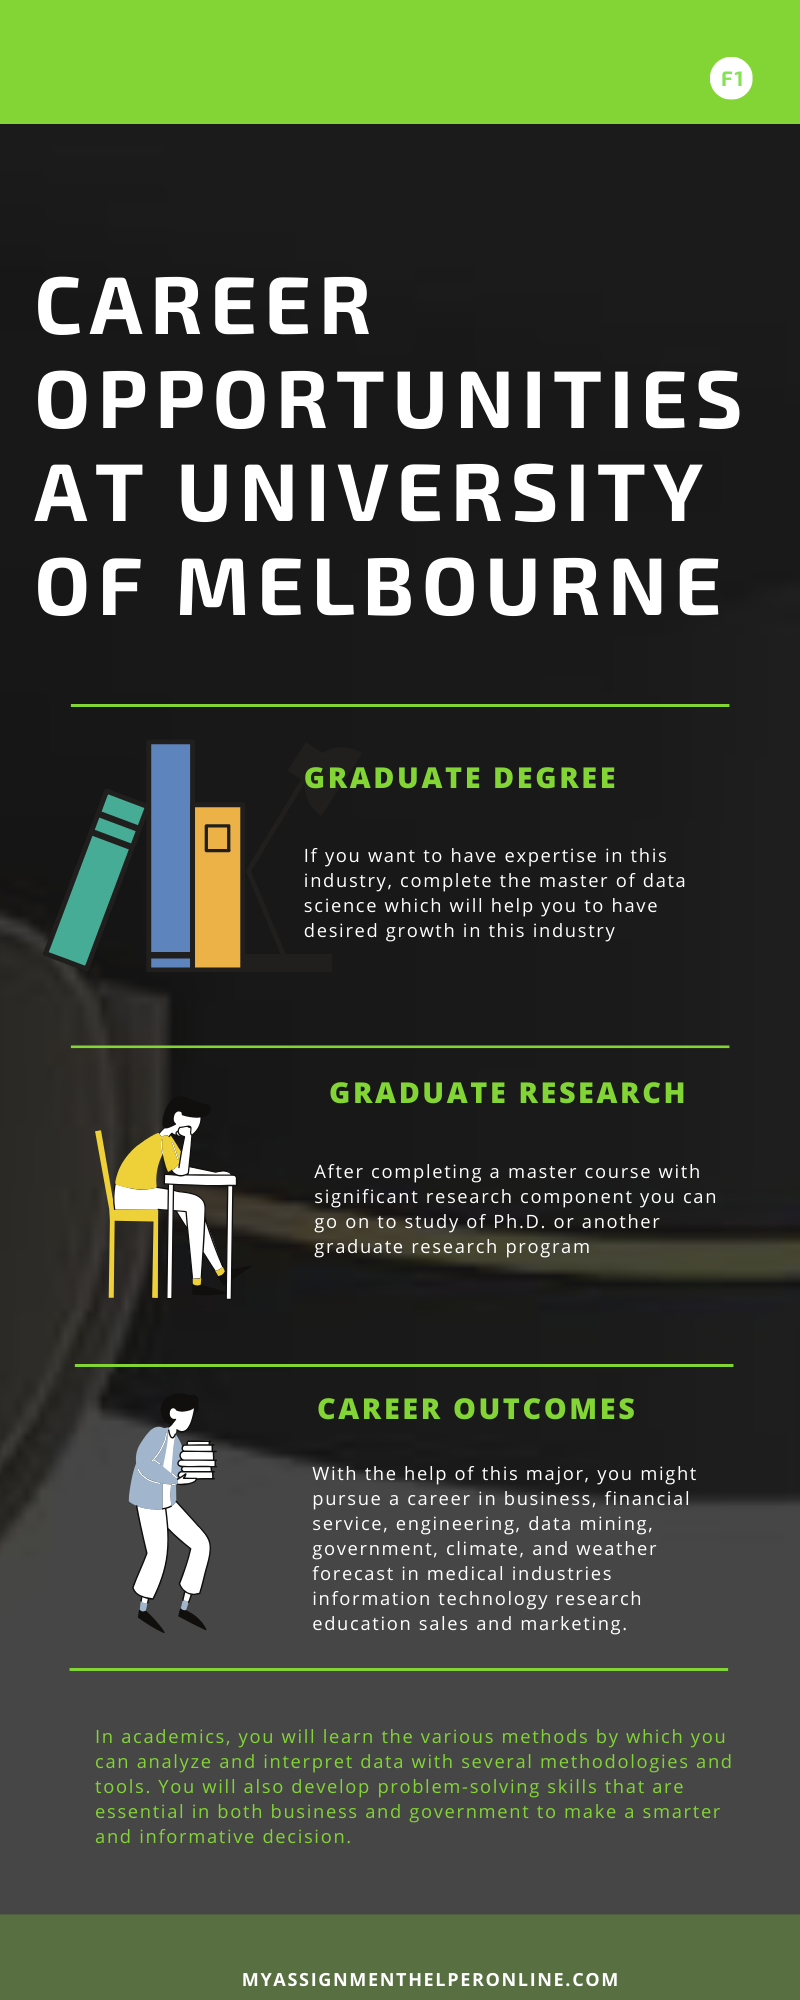 Career-opportunities-at-university-of-Melbourne